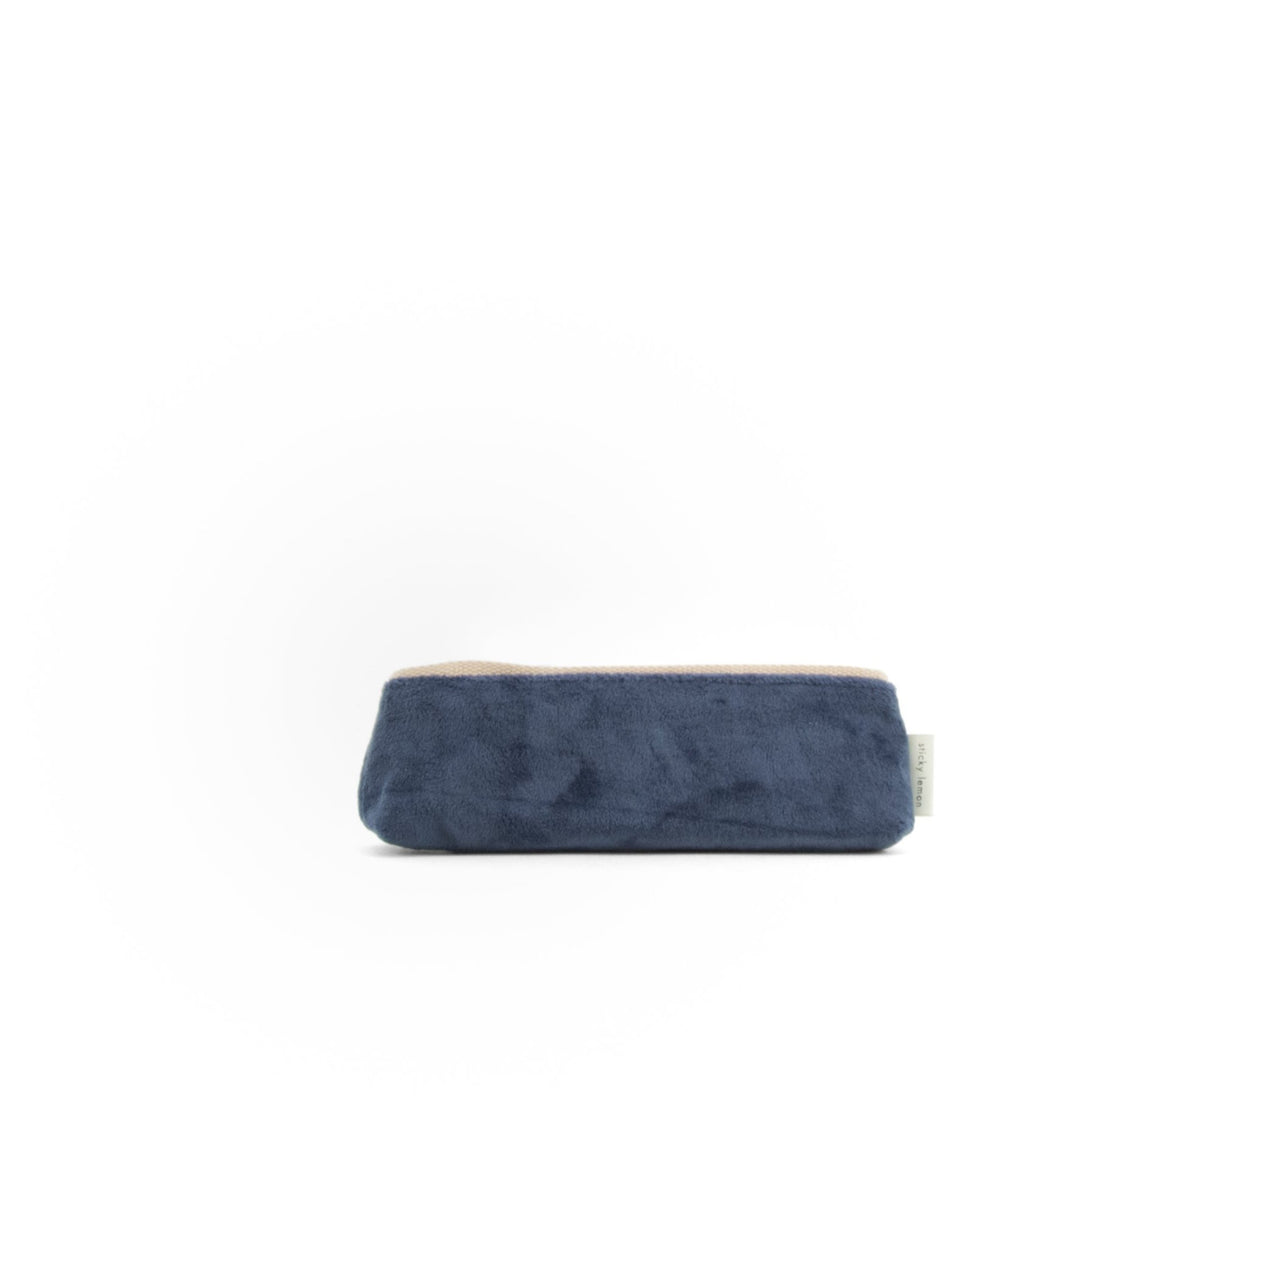 pencil case dark blue